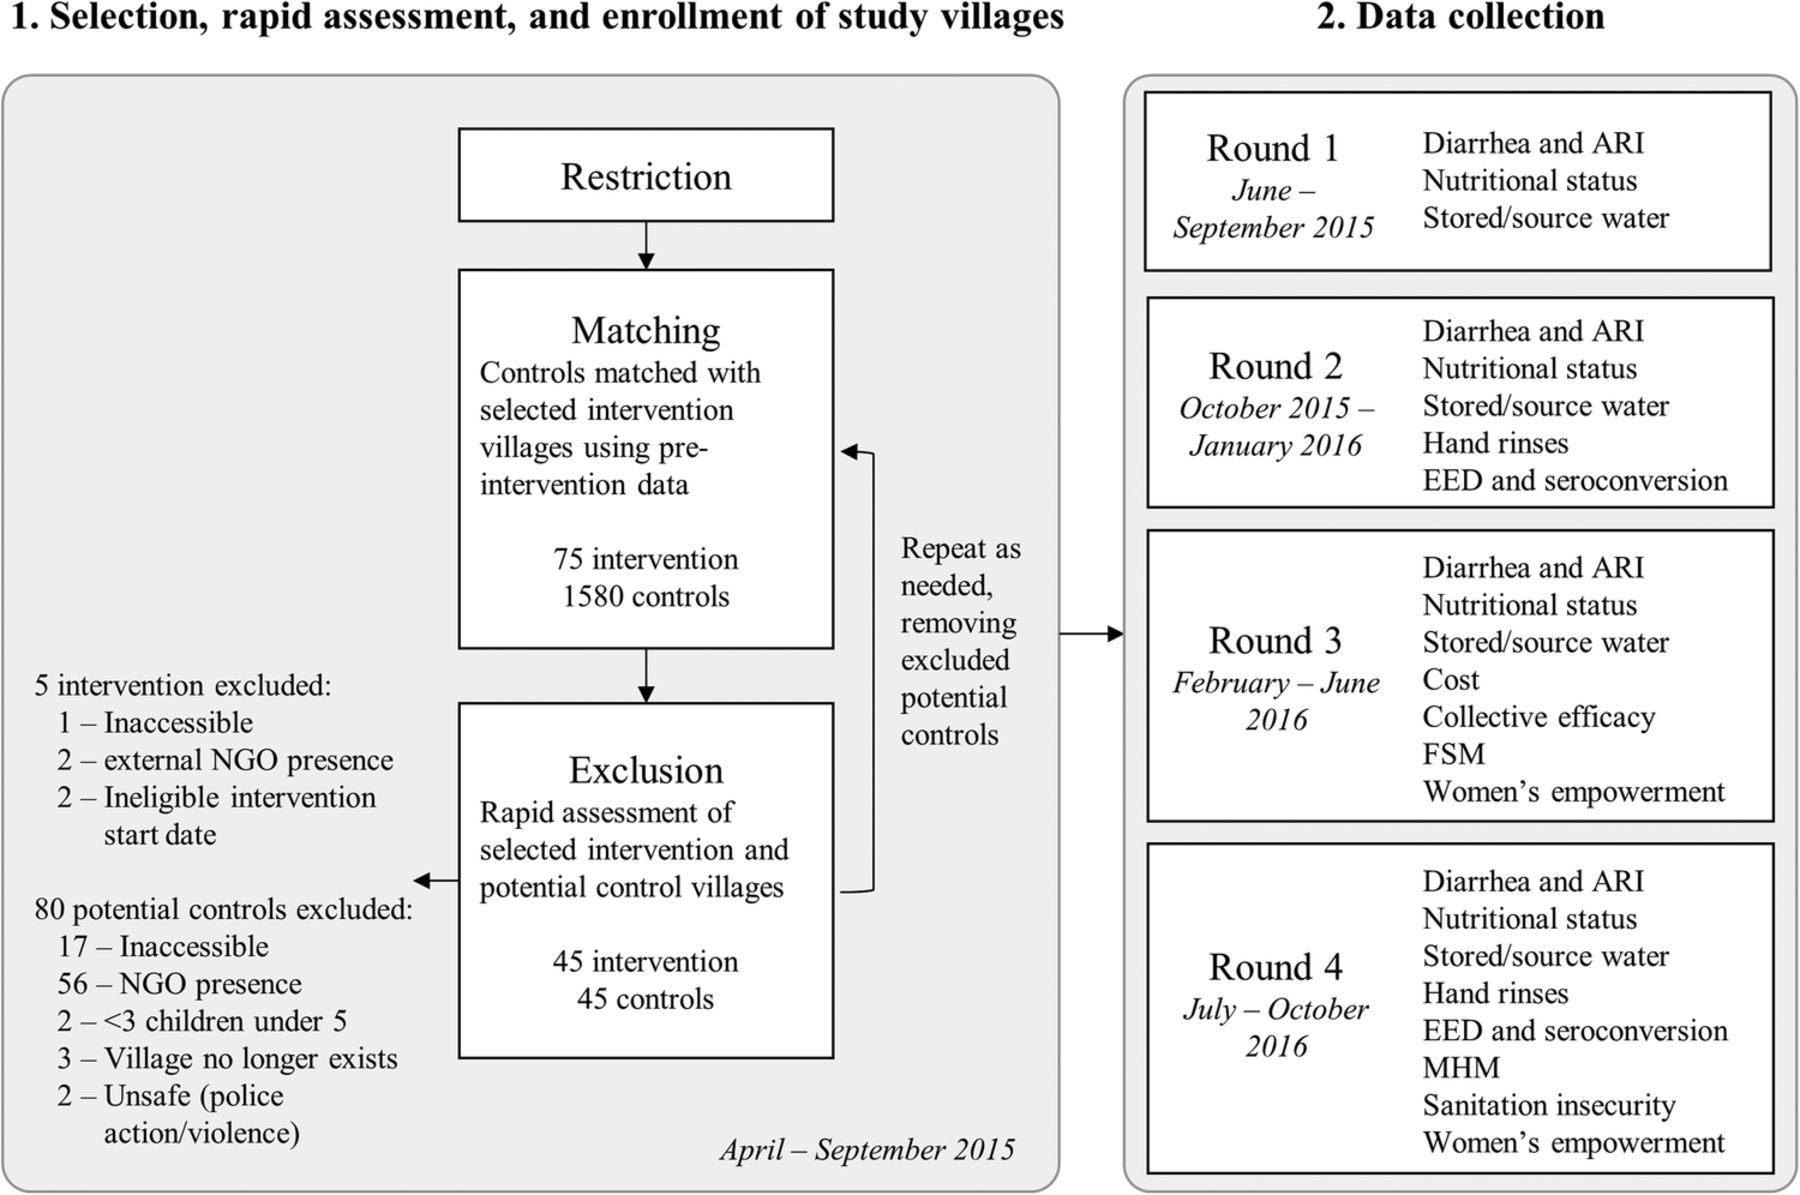 Design and rationale of a matched cohort study to assess the